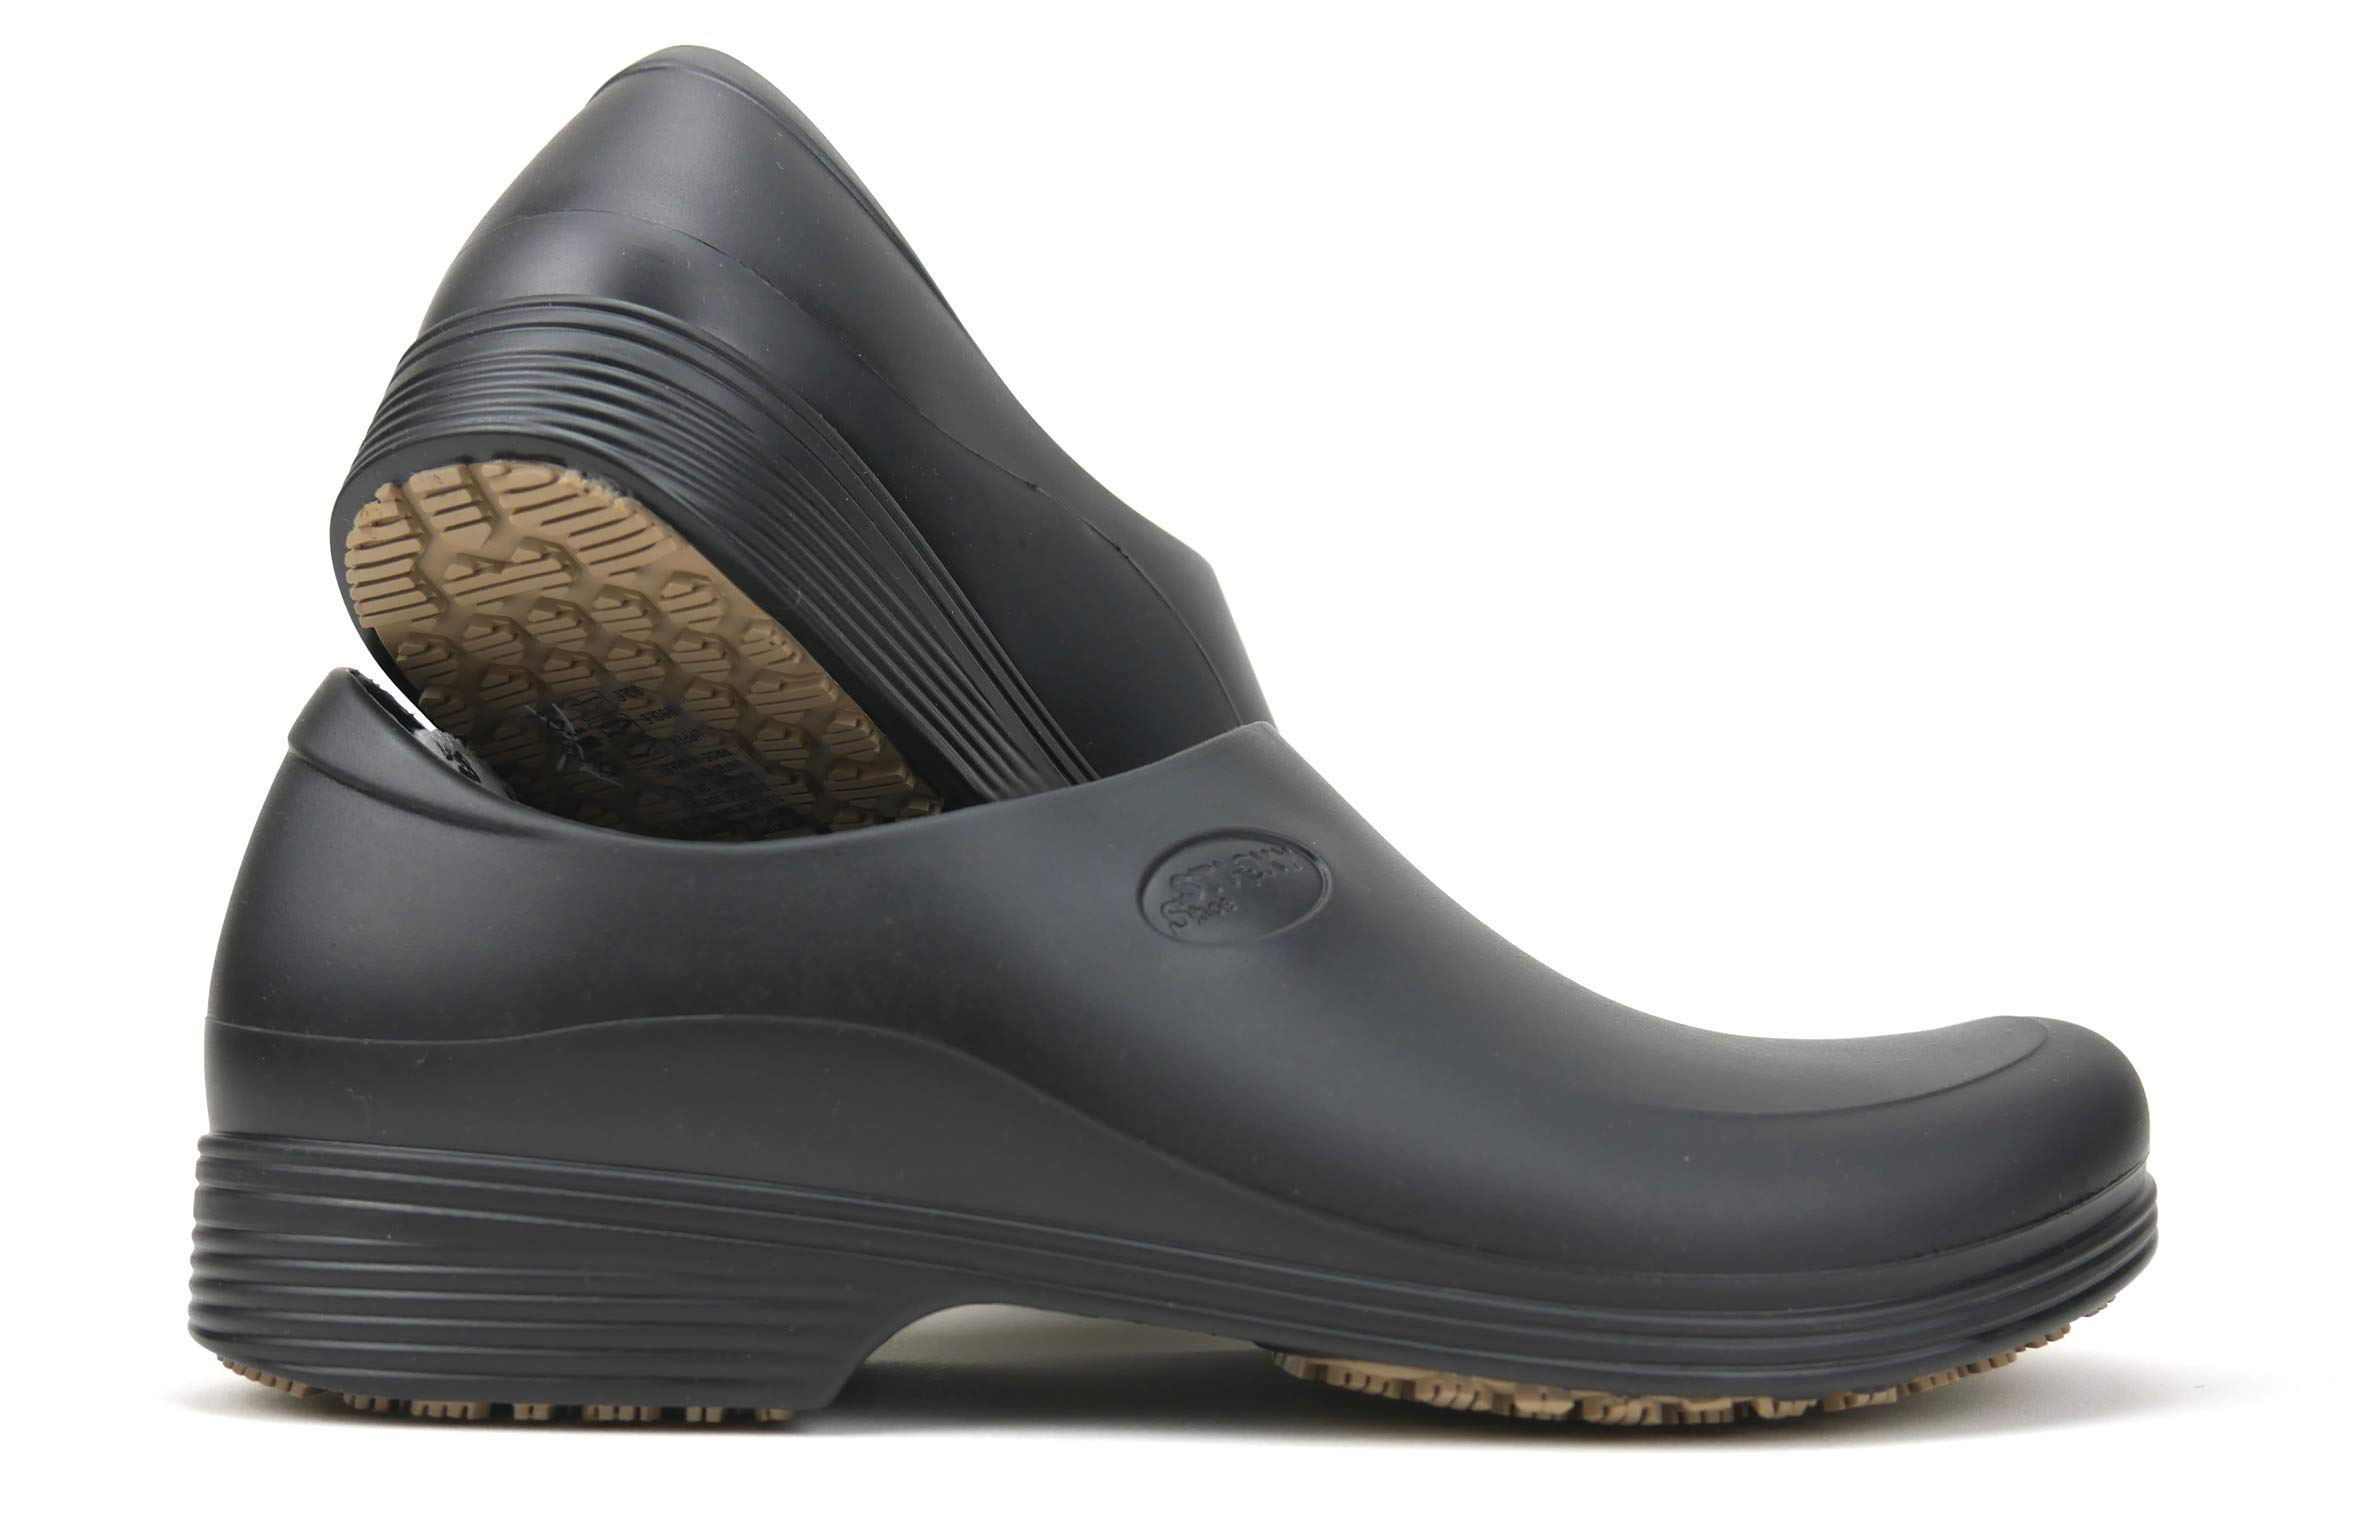 Work Shoes for Men - Waterproof Slip Resistant - StickyPRO Shoes (8.5, Black) by Sticky